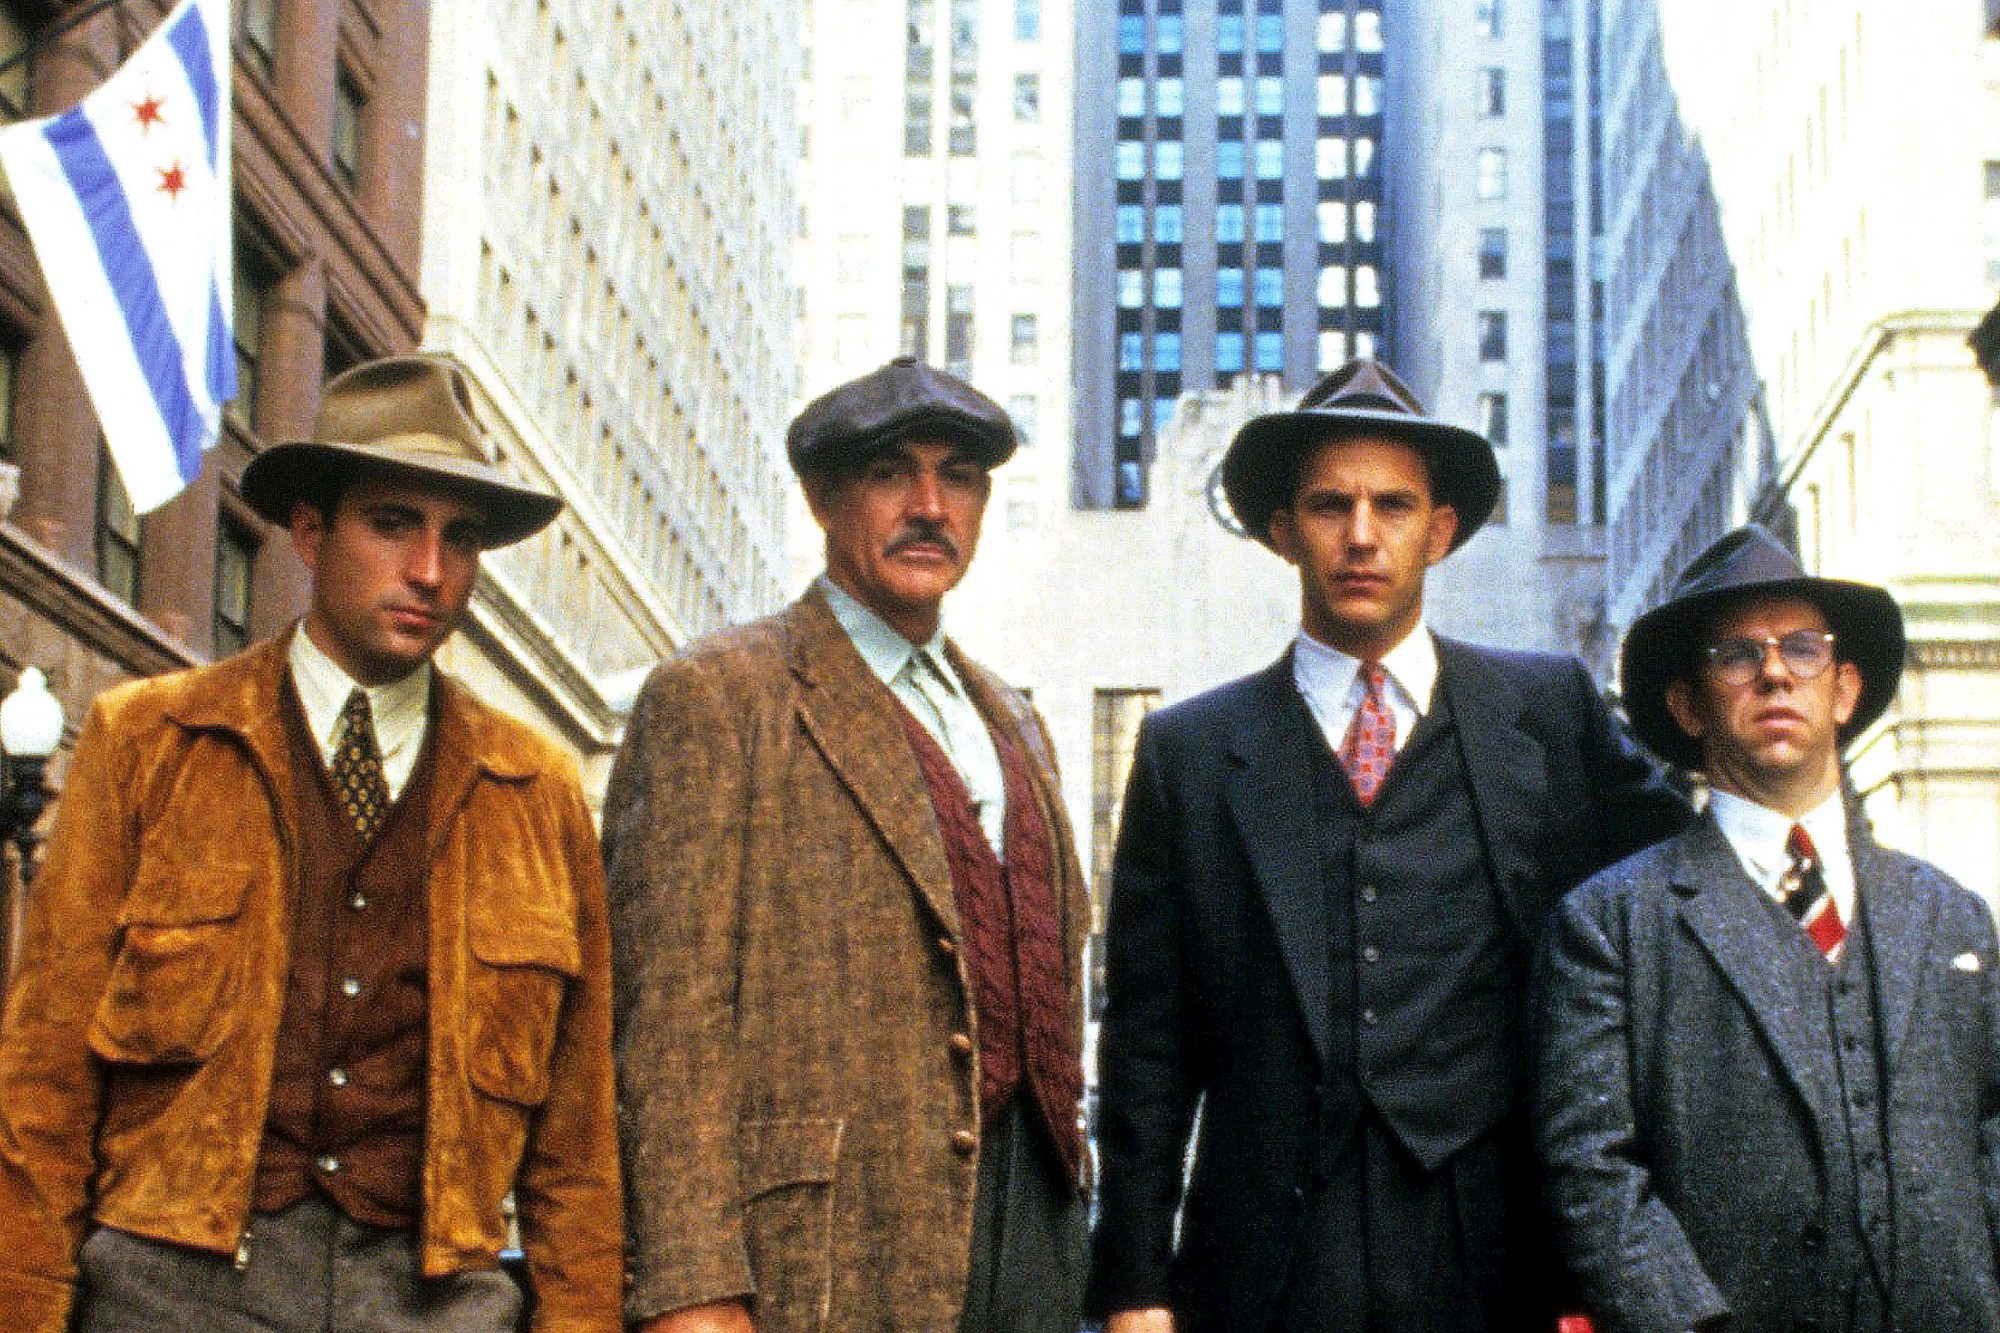 THE UNTOUCHABLES, Andy Garcia, Sean Connery, Kevin Costner, Charles Martin Smith, 1987. (c) Paramoun